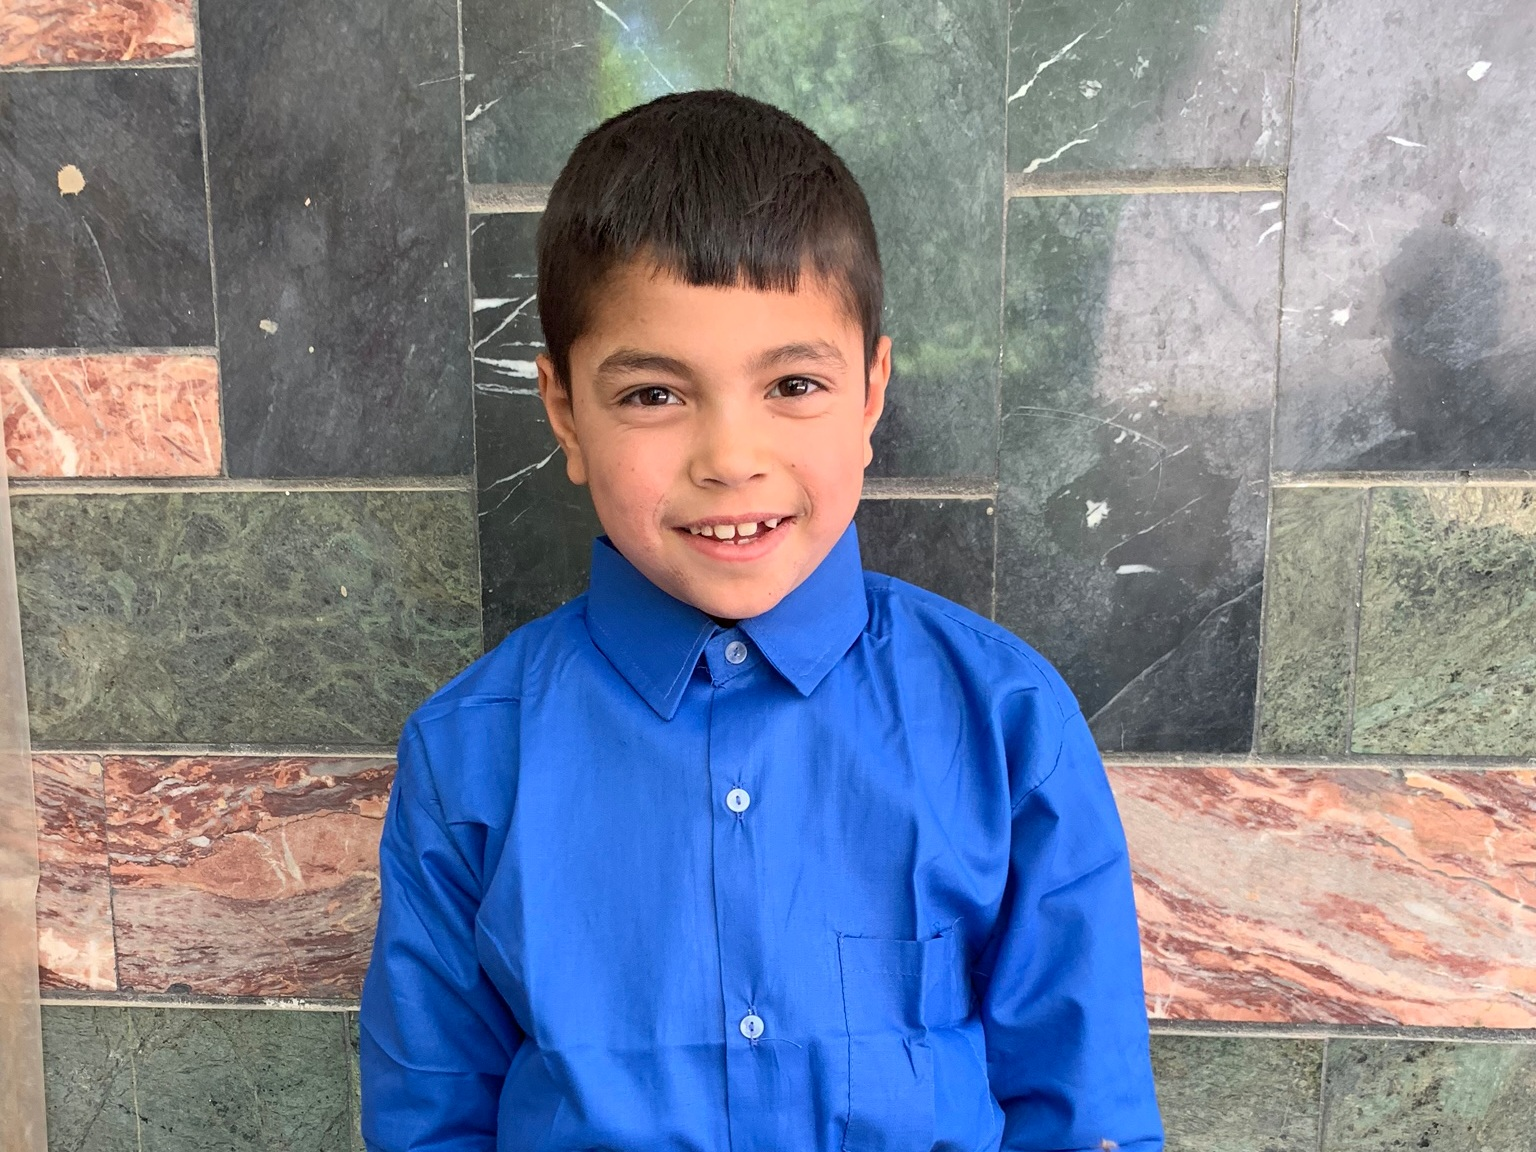 Mohammad Yahyah, 8 - Mohammad Yahyah has 7 siblings. His mother and father are both unemployed at this time.BE MOHAMMAD YAHYAH'S PARTNER>